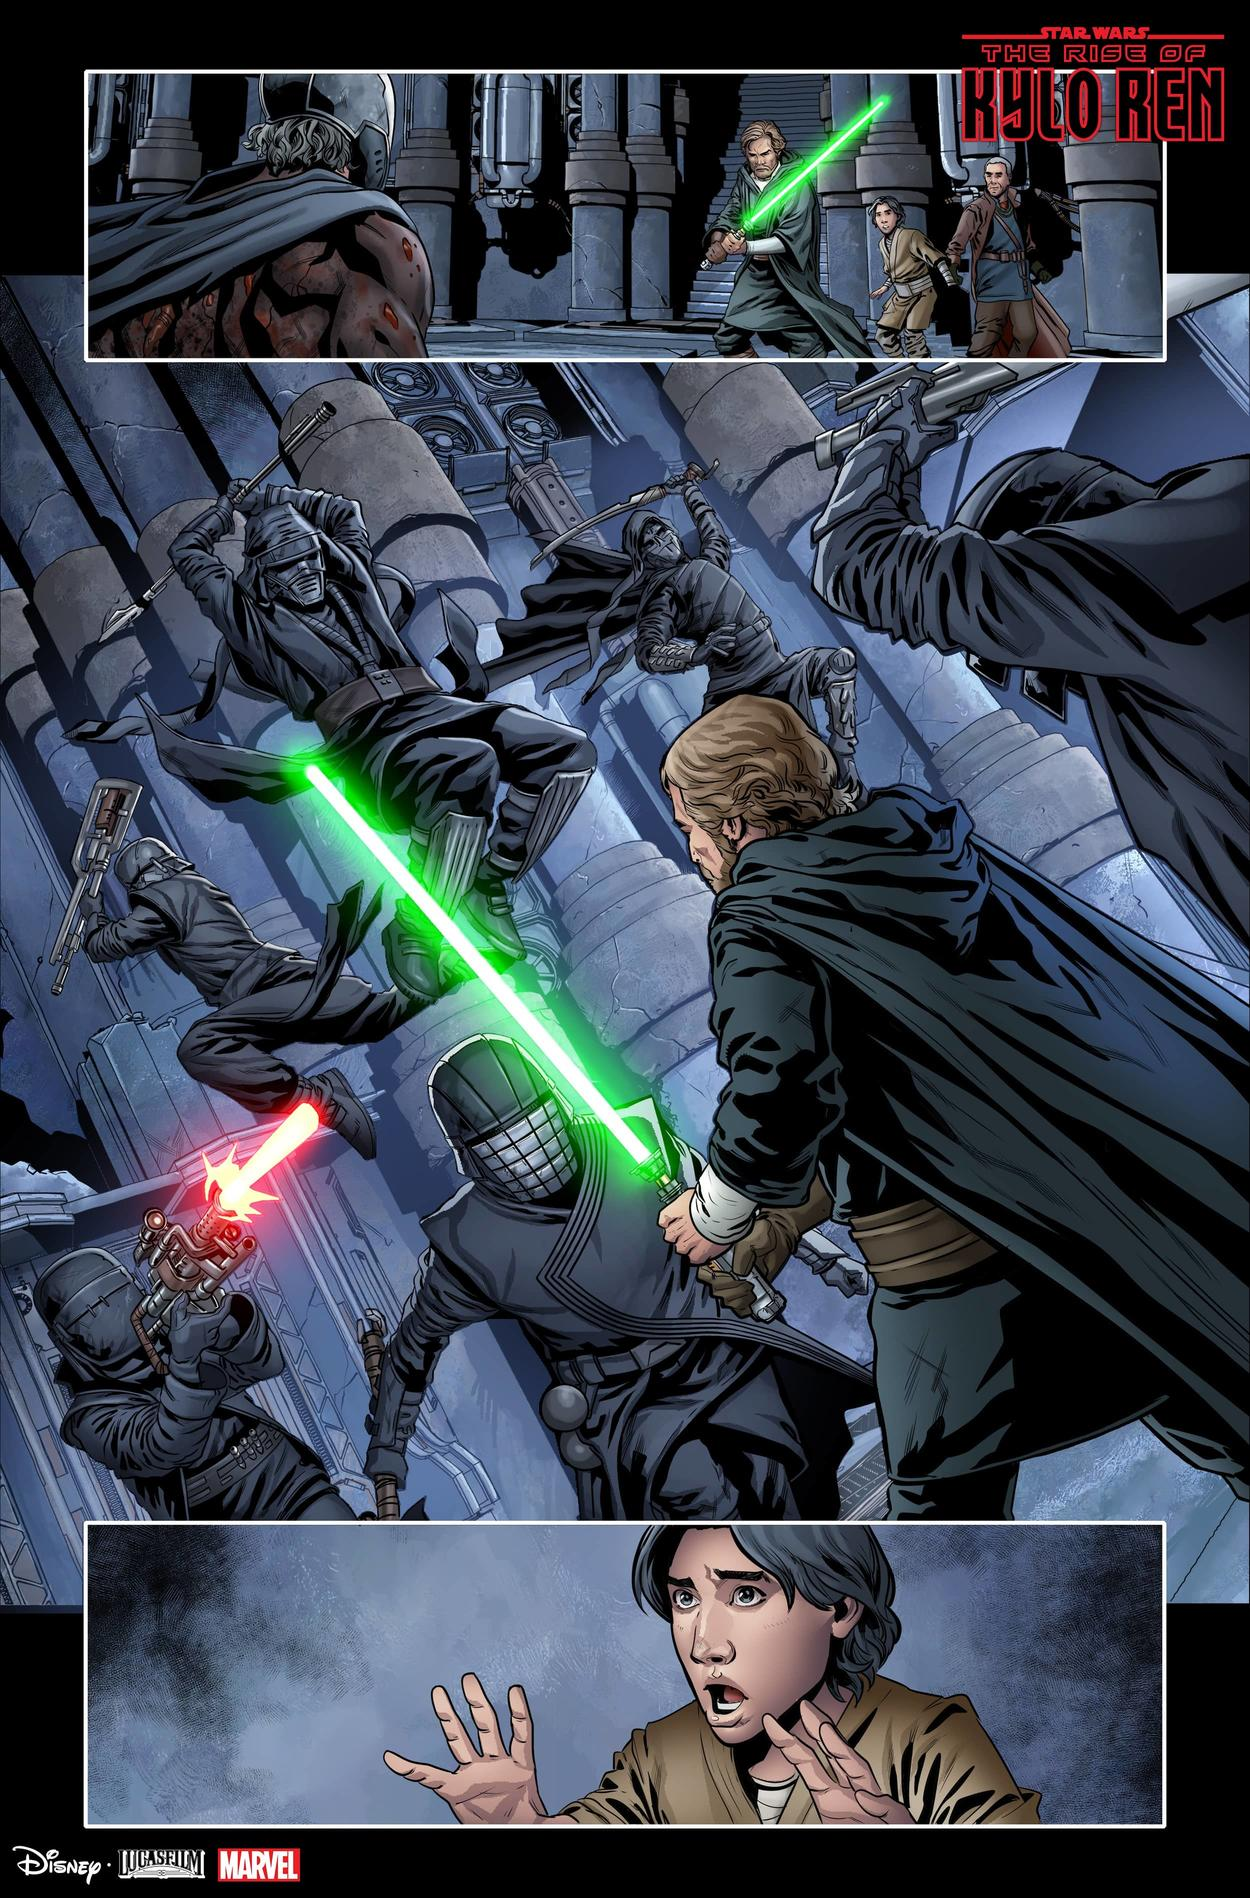 Luke Skywalker fights the Knights of Ren